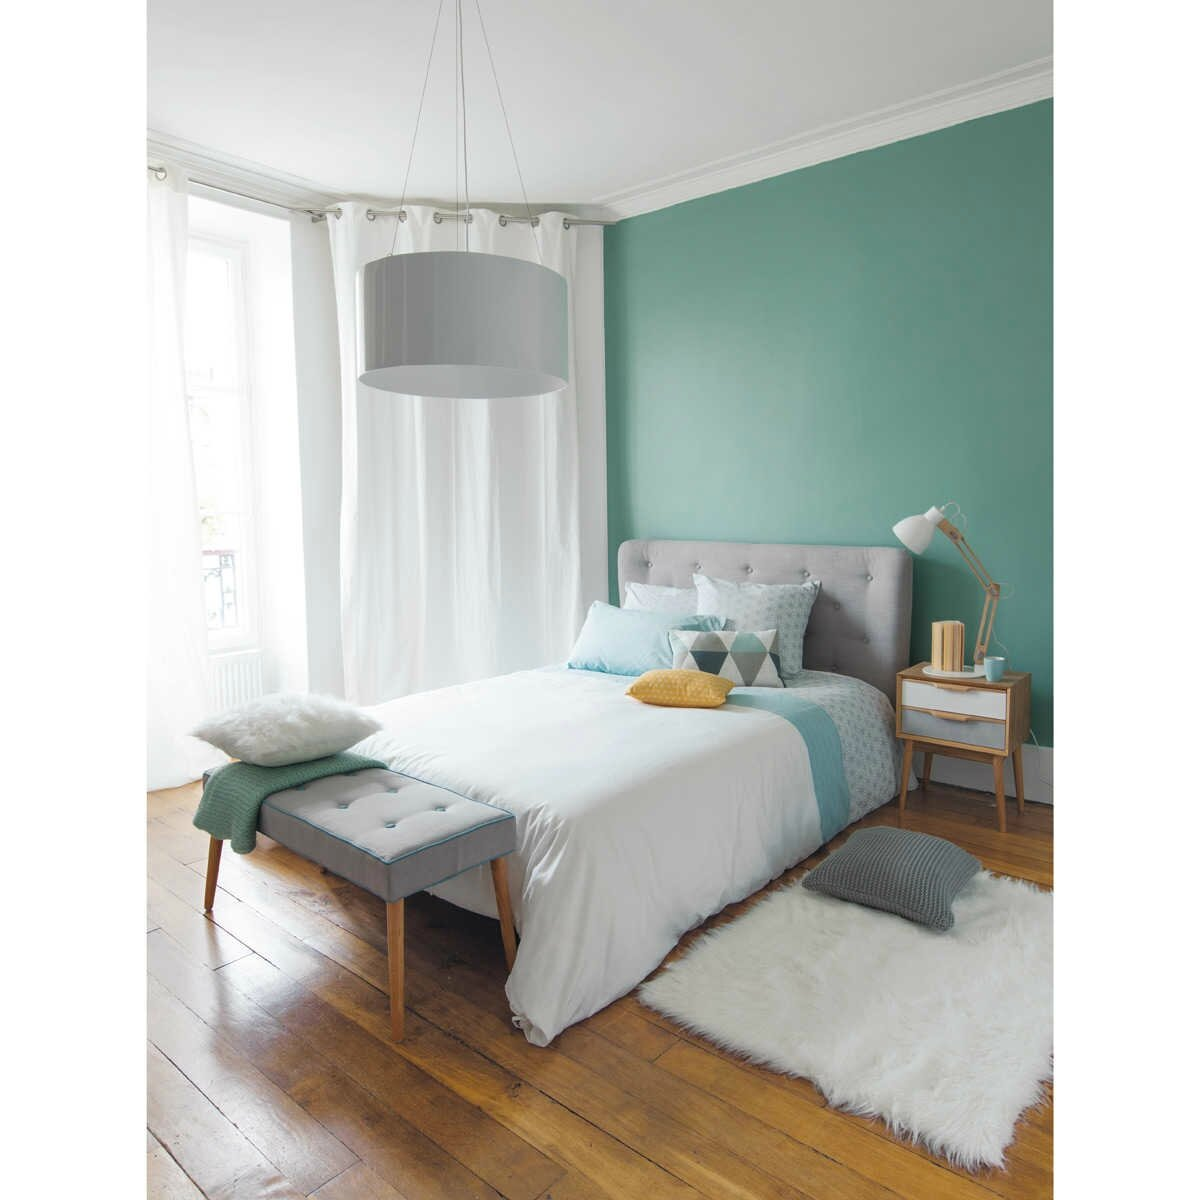 nouveau le catalogue maisons du monde 2014 deco trendy a t e l i e r. Black Bedroom Furniture Sets. Home Design Ideas